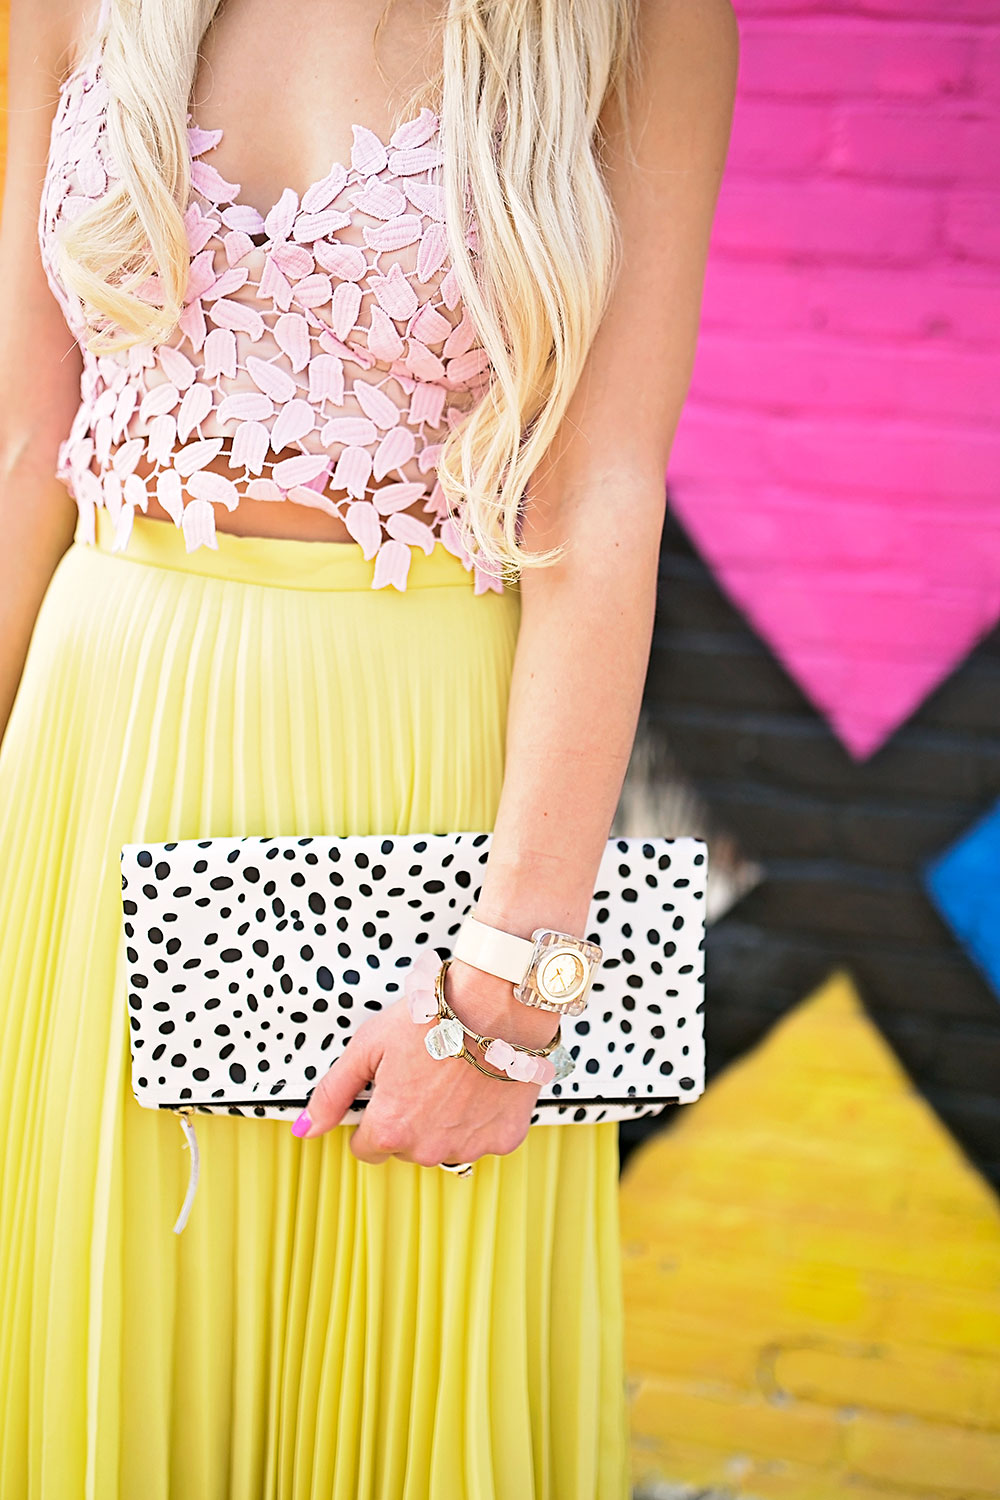 vandi-fair-dallas-fashion-blog-lauren-vandiver-southern-texas-travel-blogger-color-colorful-nordstrom-topshop-chiffon-pleated-midi-skirt-neon-yellow-bardot-flora-lace-crop-top-2